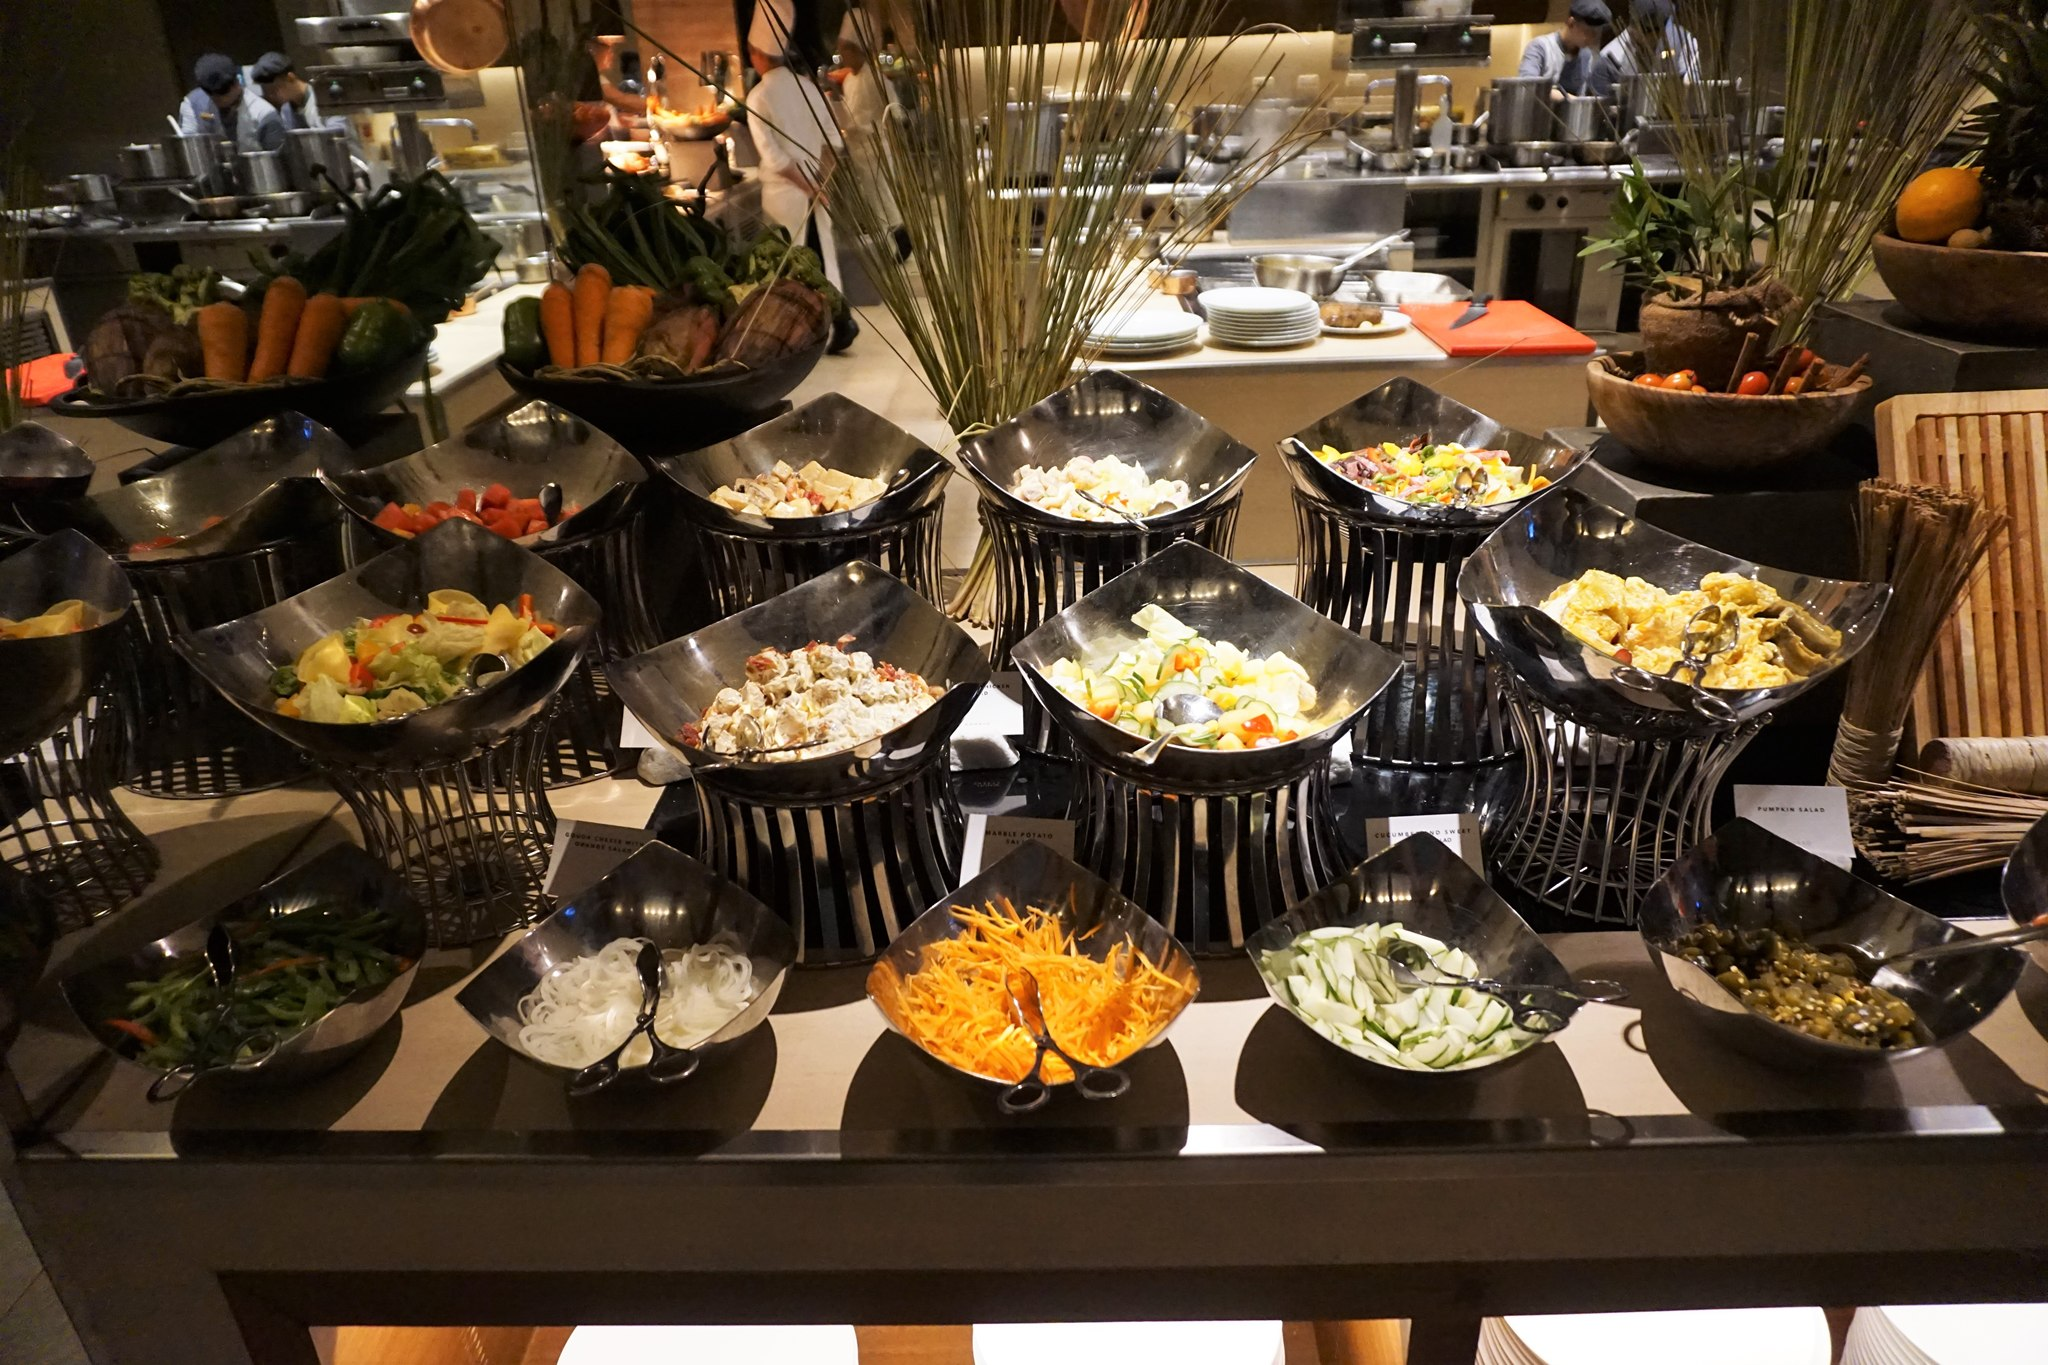 salad-and-greens-at-conrad-manila-brasserie-on-3